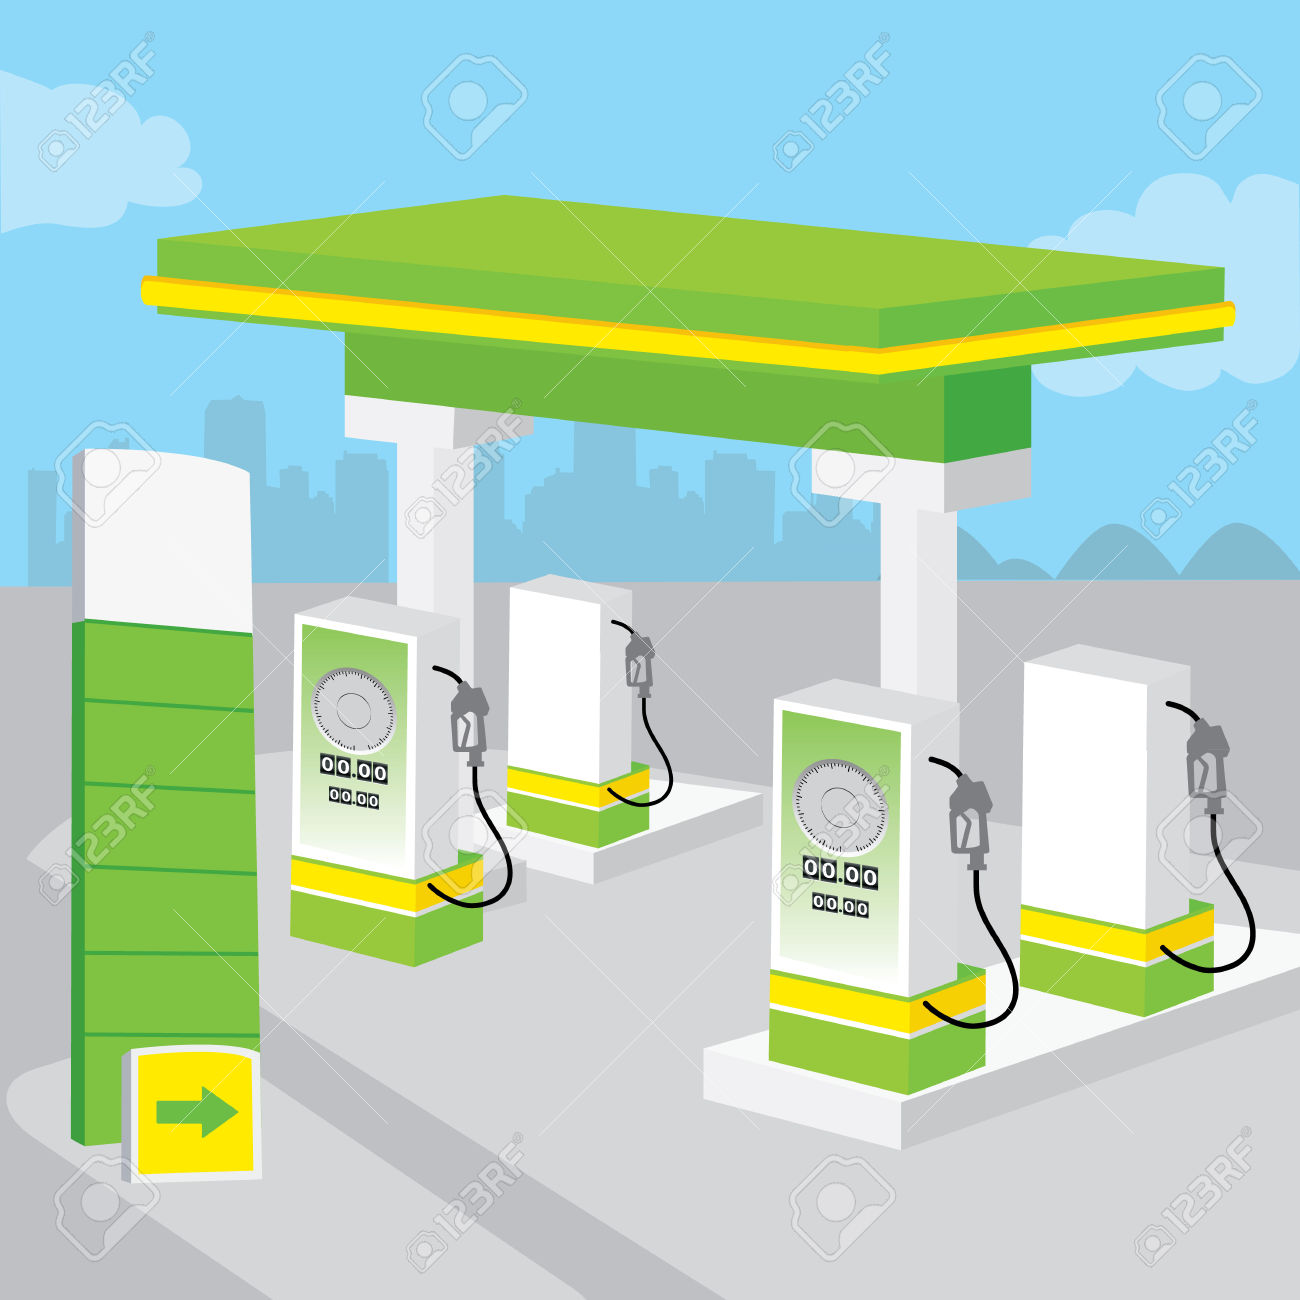 Petrol Gas Station Background Decorate Design Cartoon Vector.